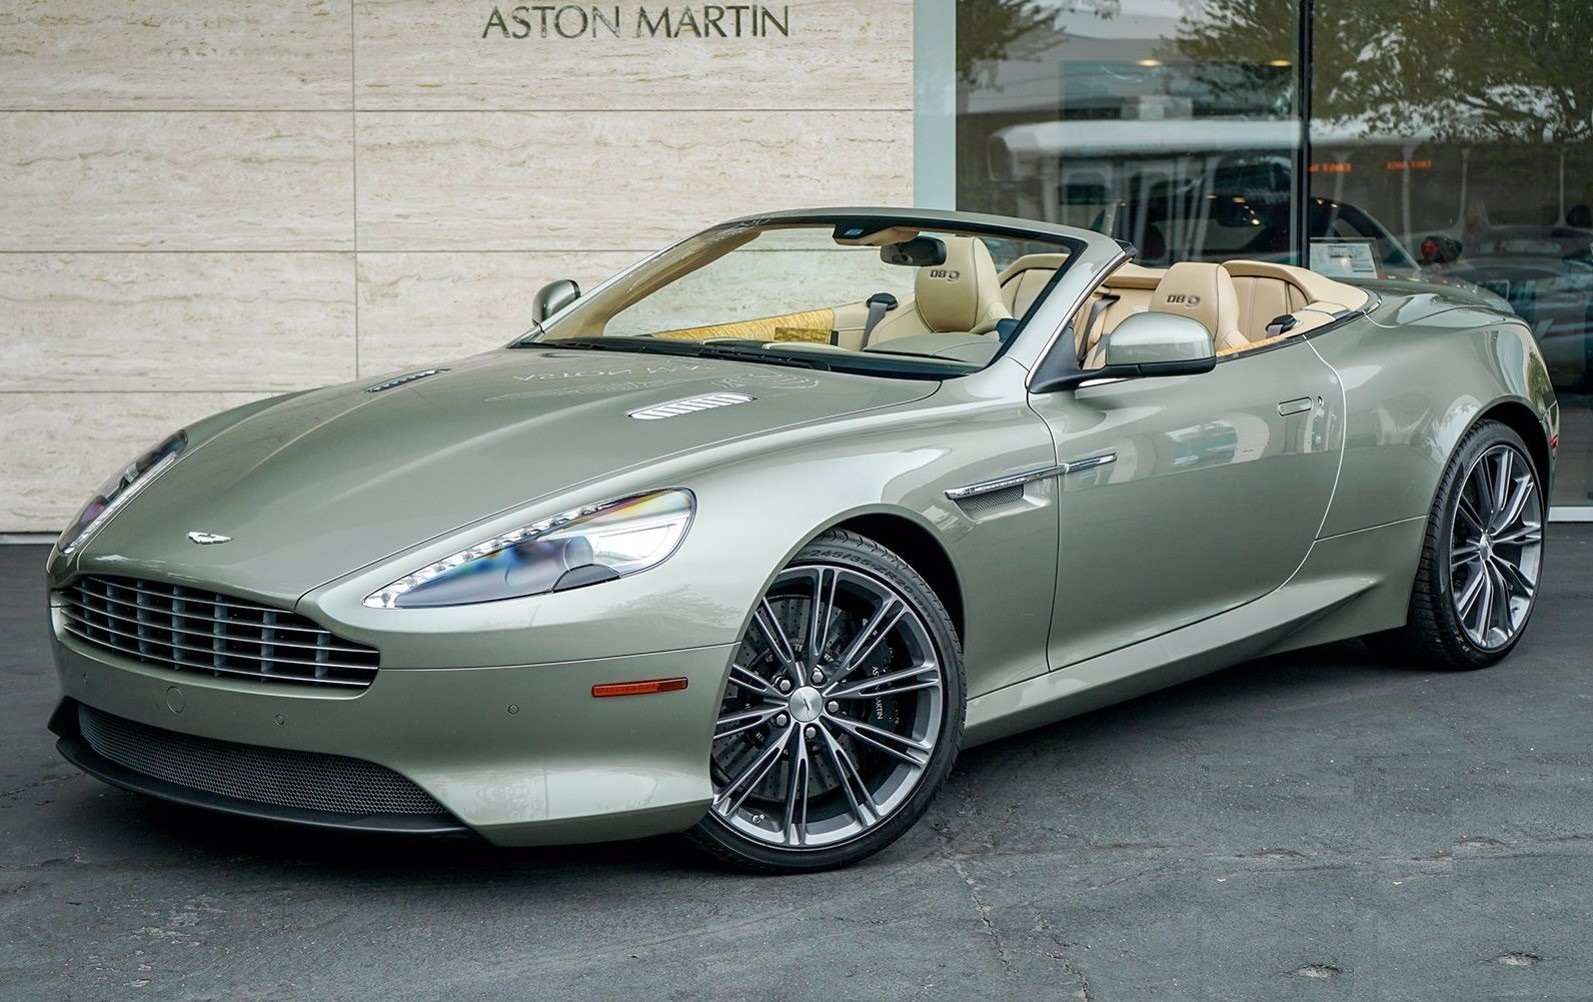 Used 2015 Aston Martin DB9 Volante for sale $119,990 at Bentley Greenwich in Greenwich CT 06830 1